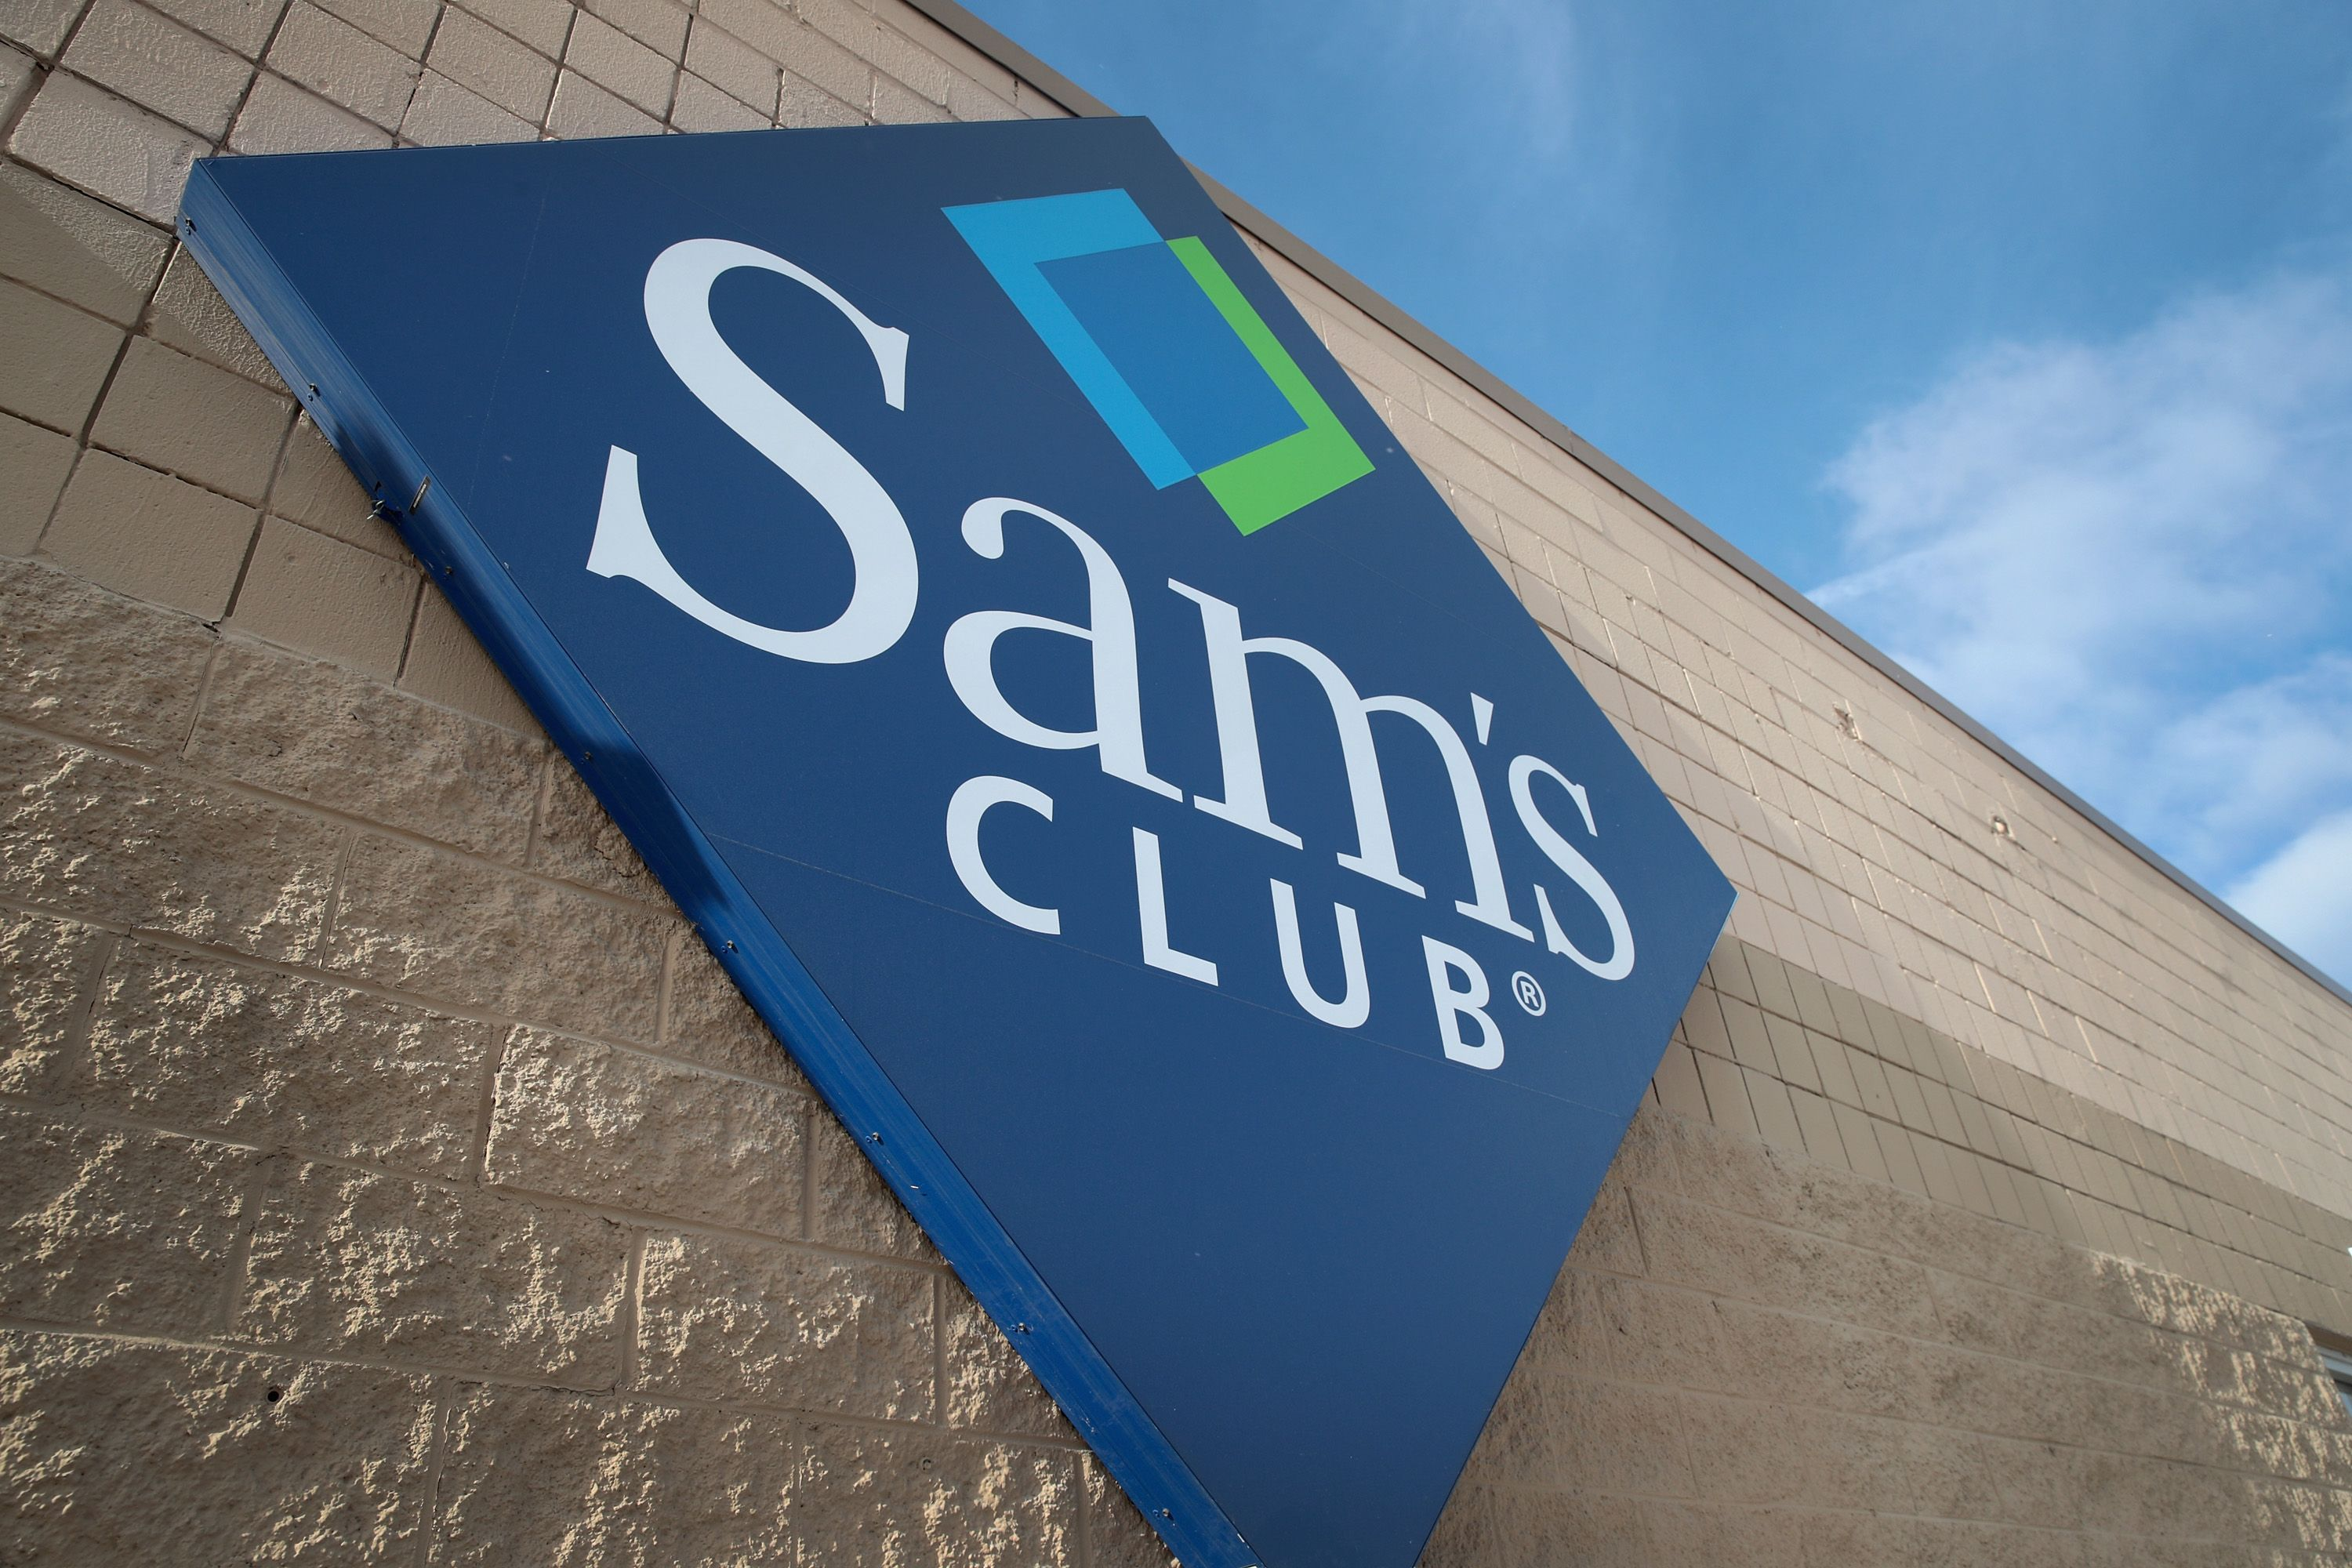 Is Sam's Club Open On Memorial Day?